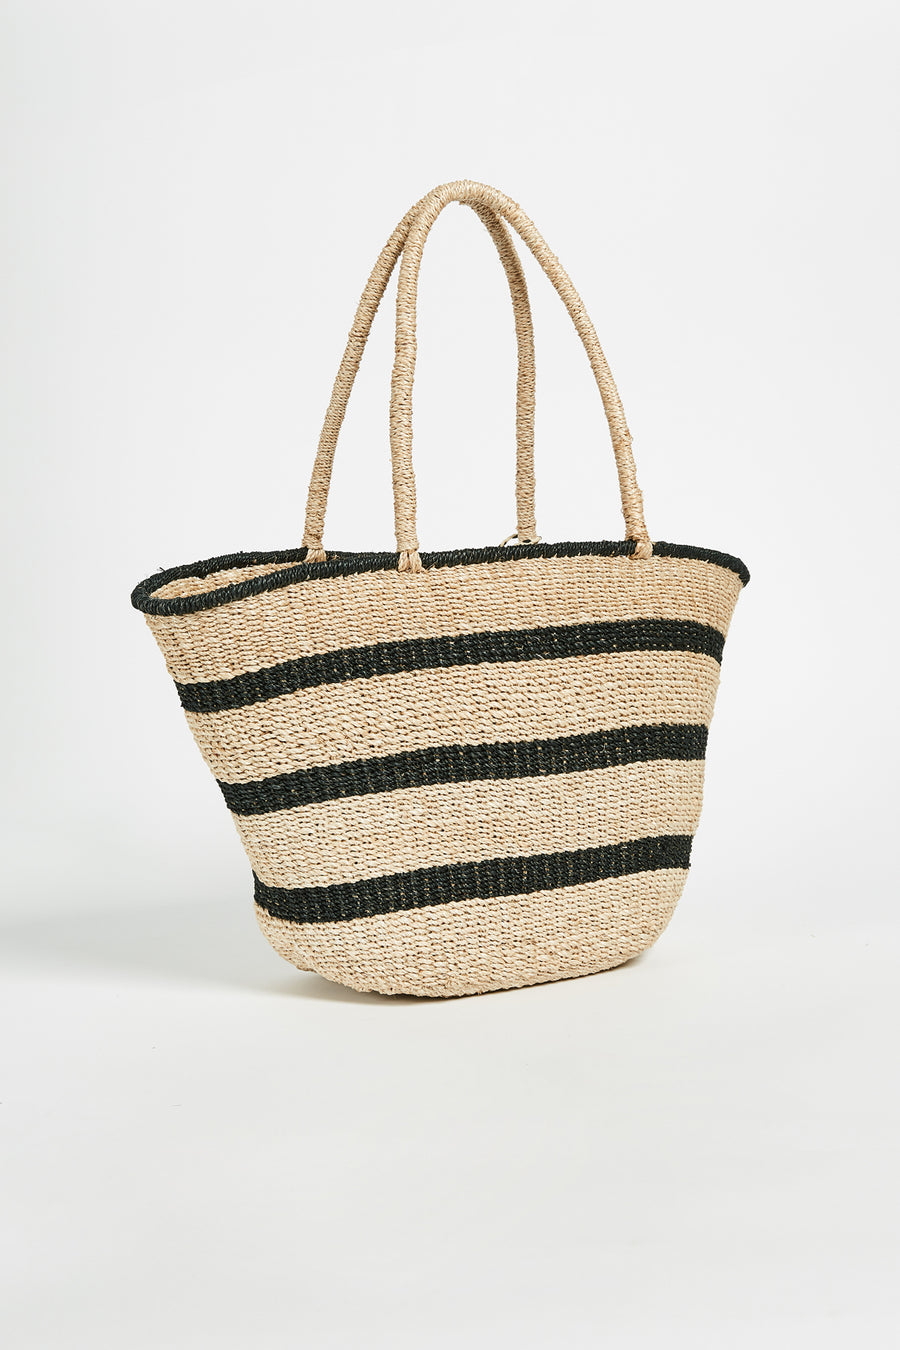 Mare Tote - Natural - Pavilion